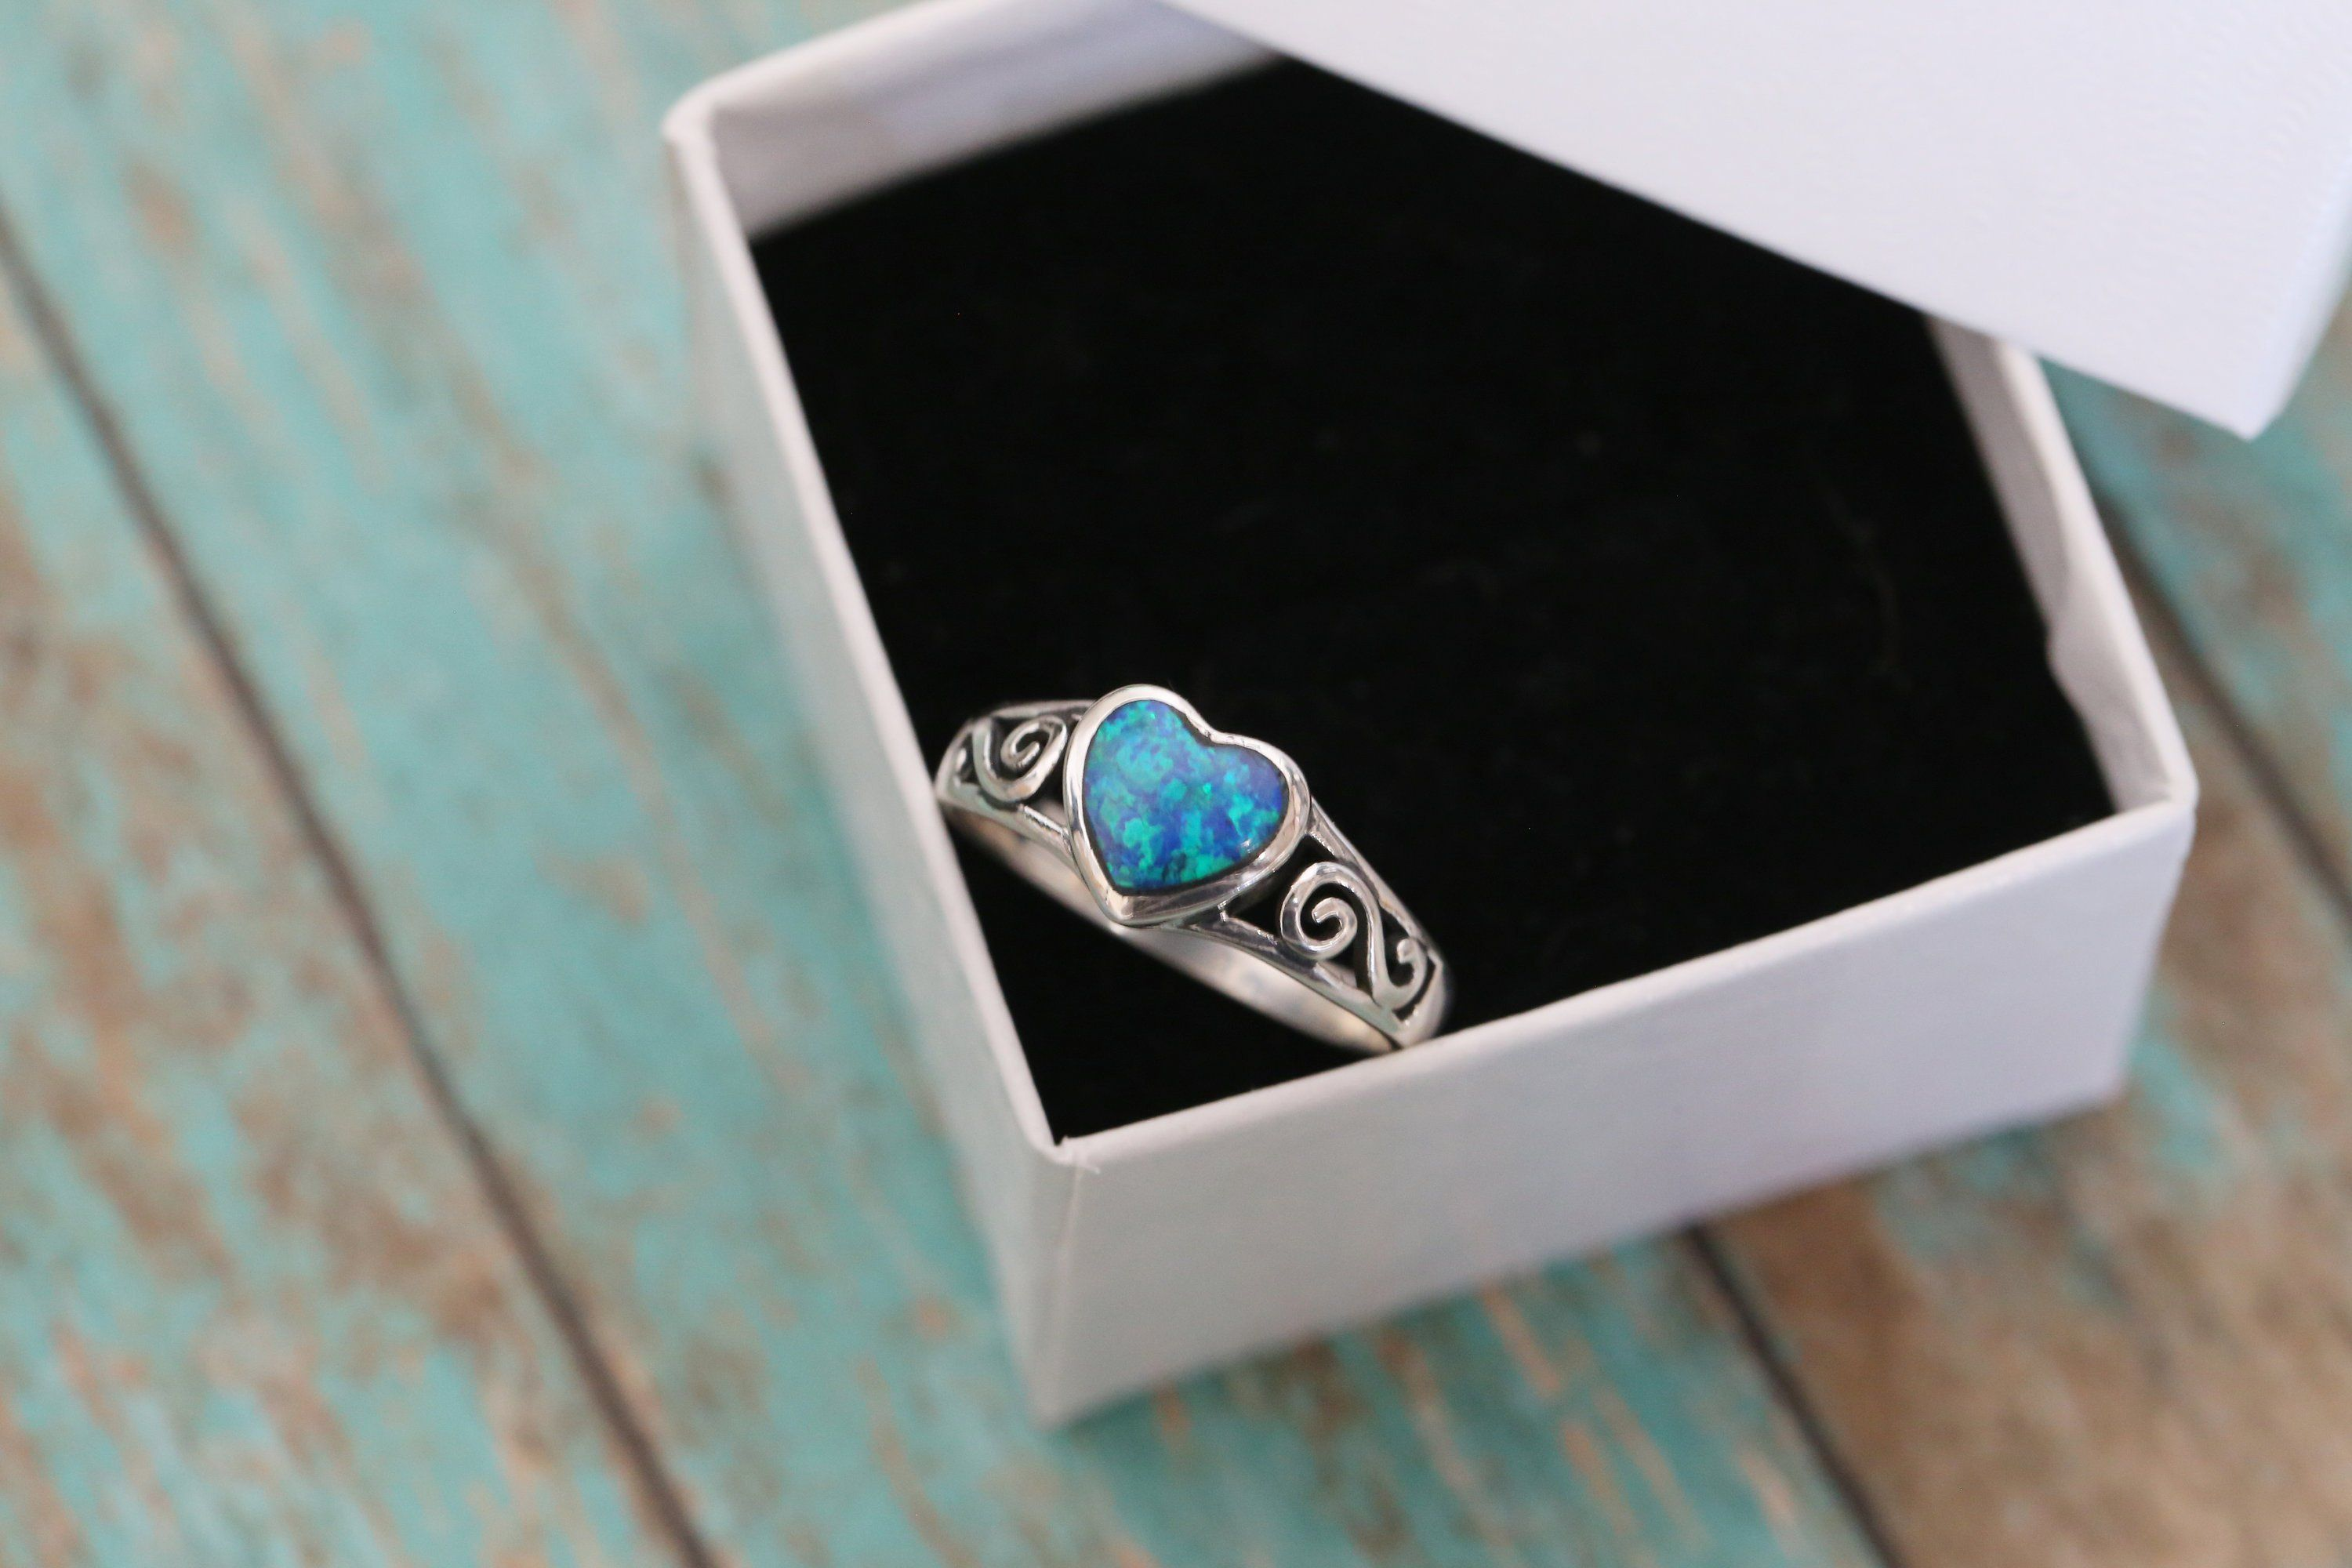 Can You Get Dna From Ashes After Cremation Cremation Ring Sterling Silver Blue Opal Heart Ring Cremation Jewelry Ash Ring Ash Jewelry Urn R Opal Heart Ring Memorial Jewelry Ashes Ashes Jewelry